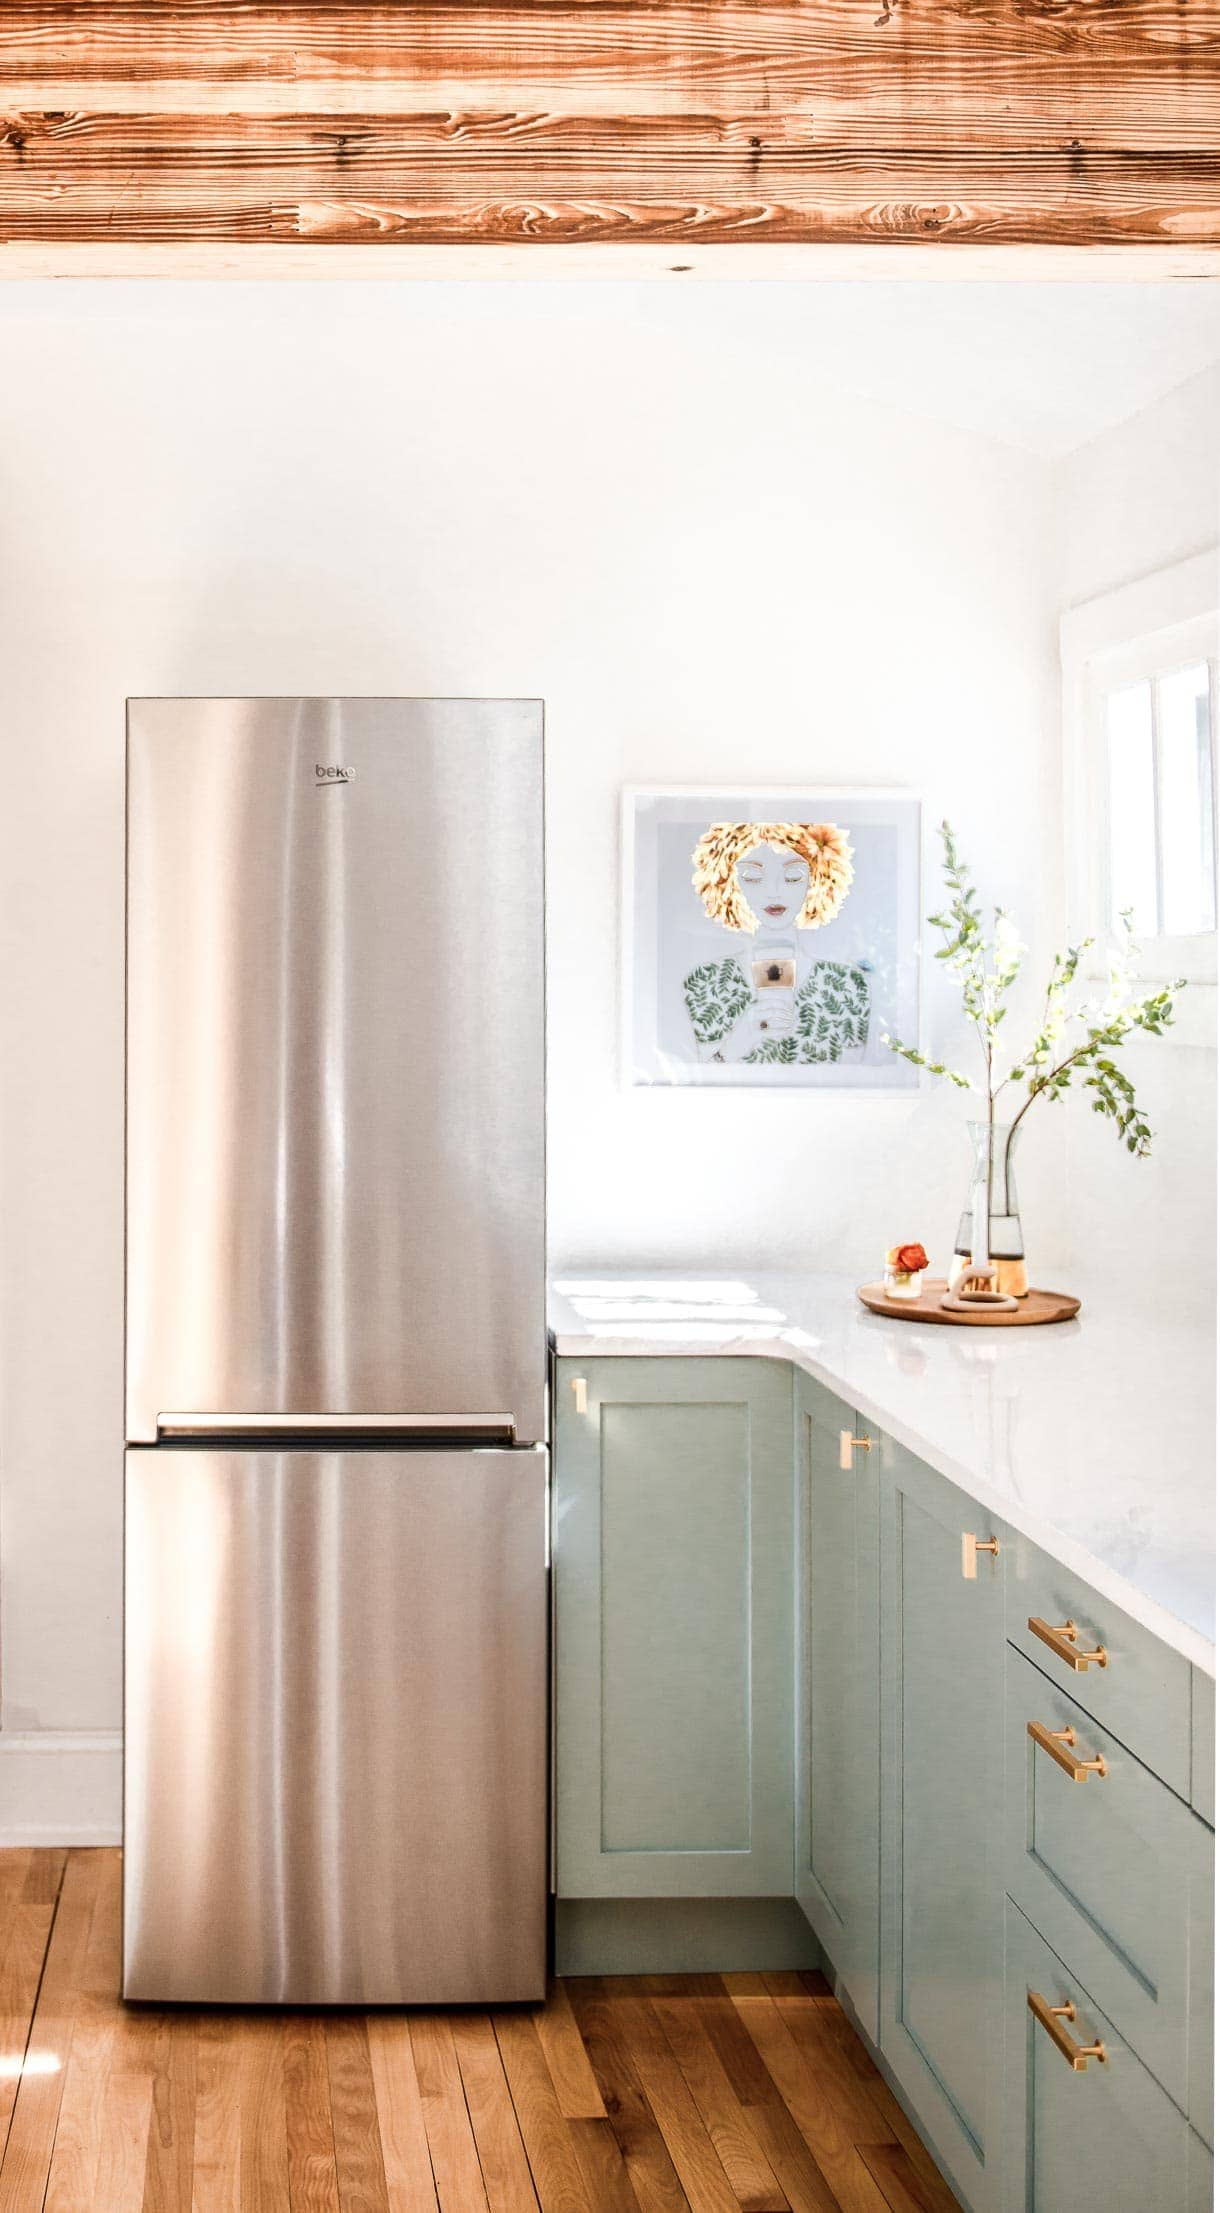 Beko 24 inch refrigerator in kitchen renovation